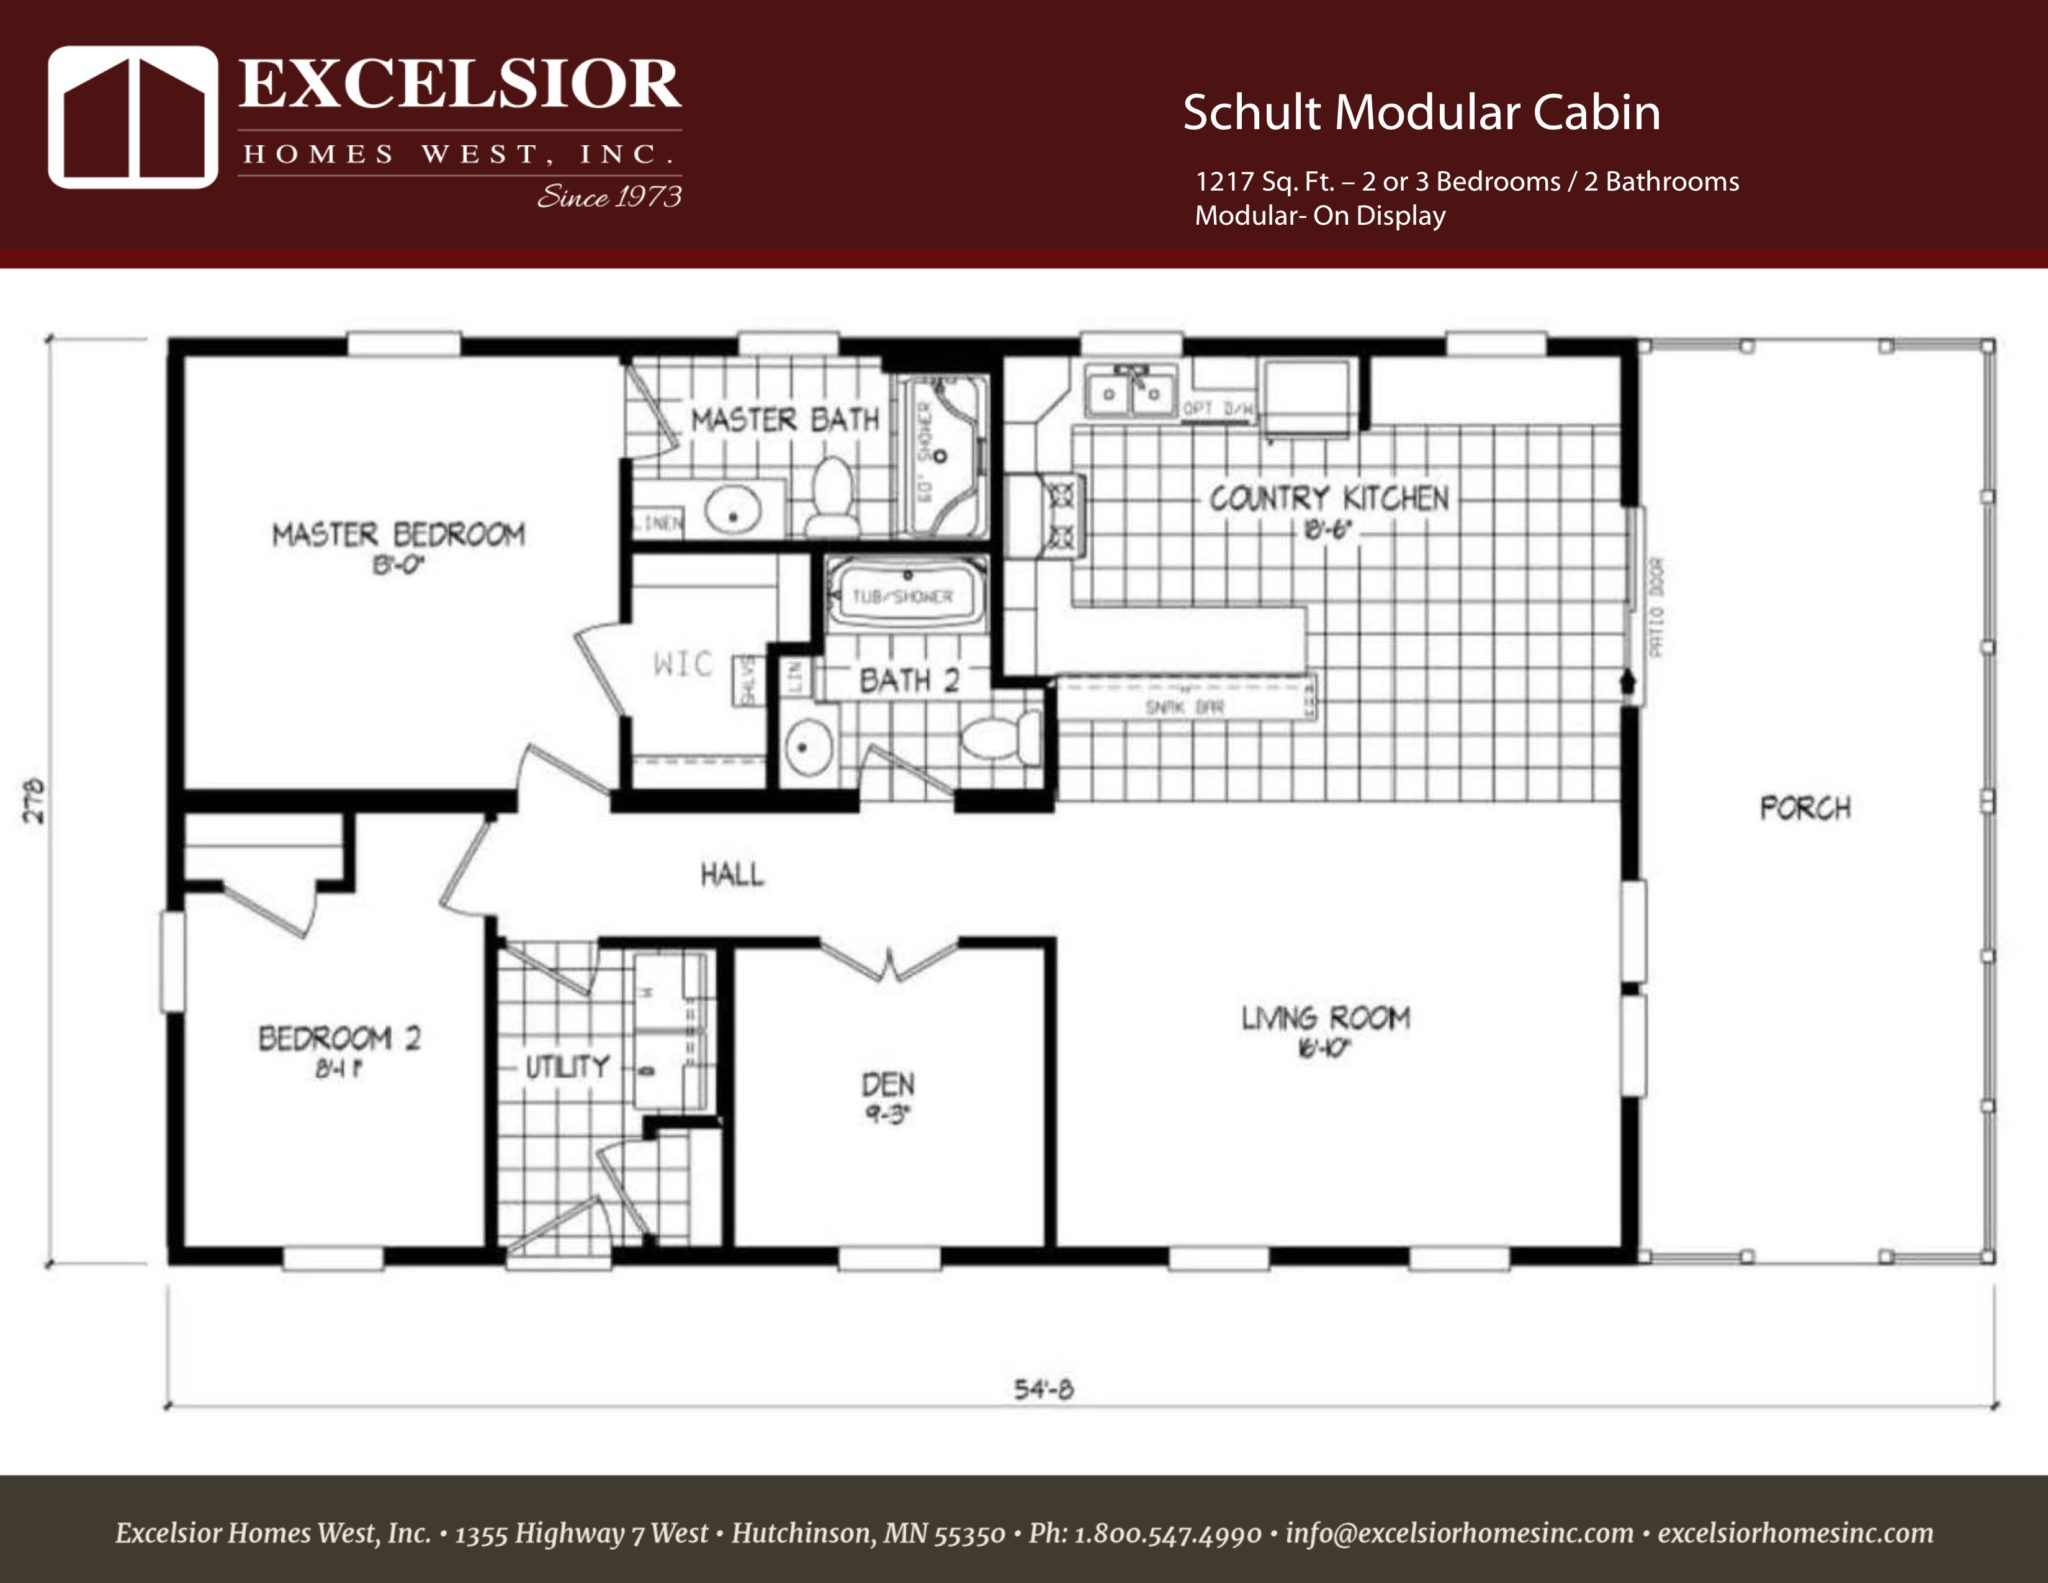 Schult modular cabin excelsior homes west inc for Mobile home plans